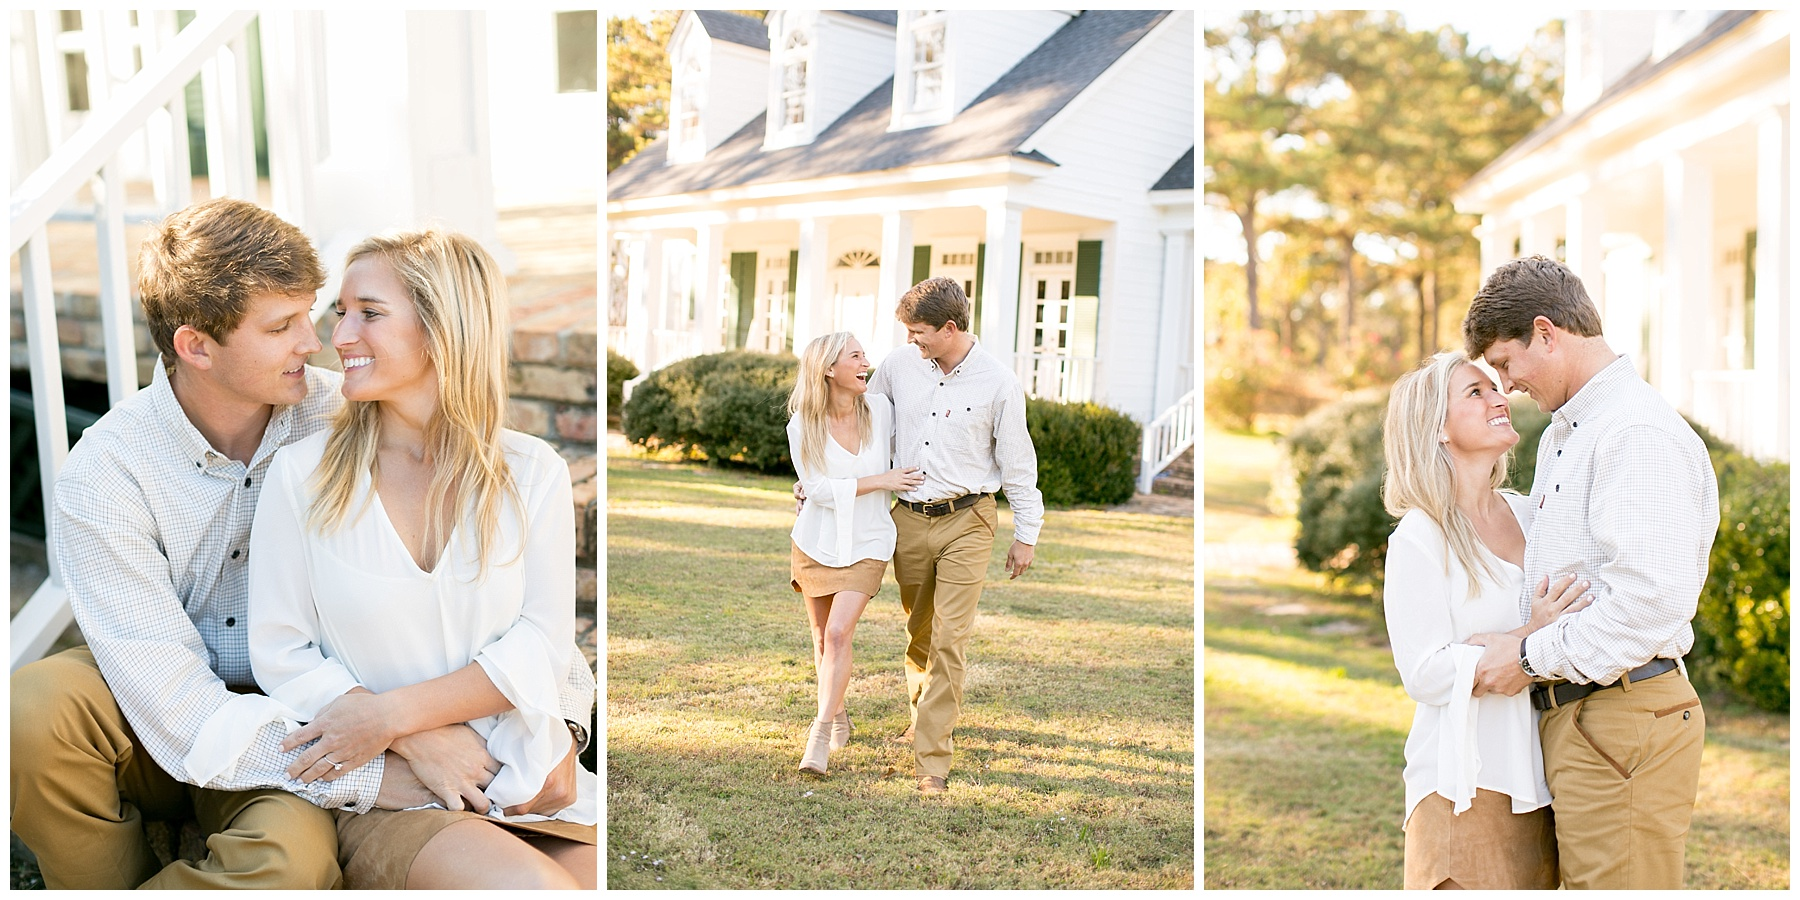 2018-01-11_0002 She Said Yes: Hollan Smith Uncategorized    invision_events, birmingham_al, auburn_al, alabama, atlanta_ga, atl, georgia, wedding_planner, wedding_designer, weddings, photography, wedding_planning